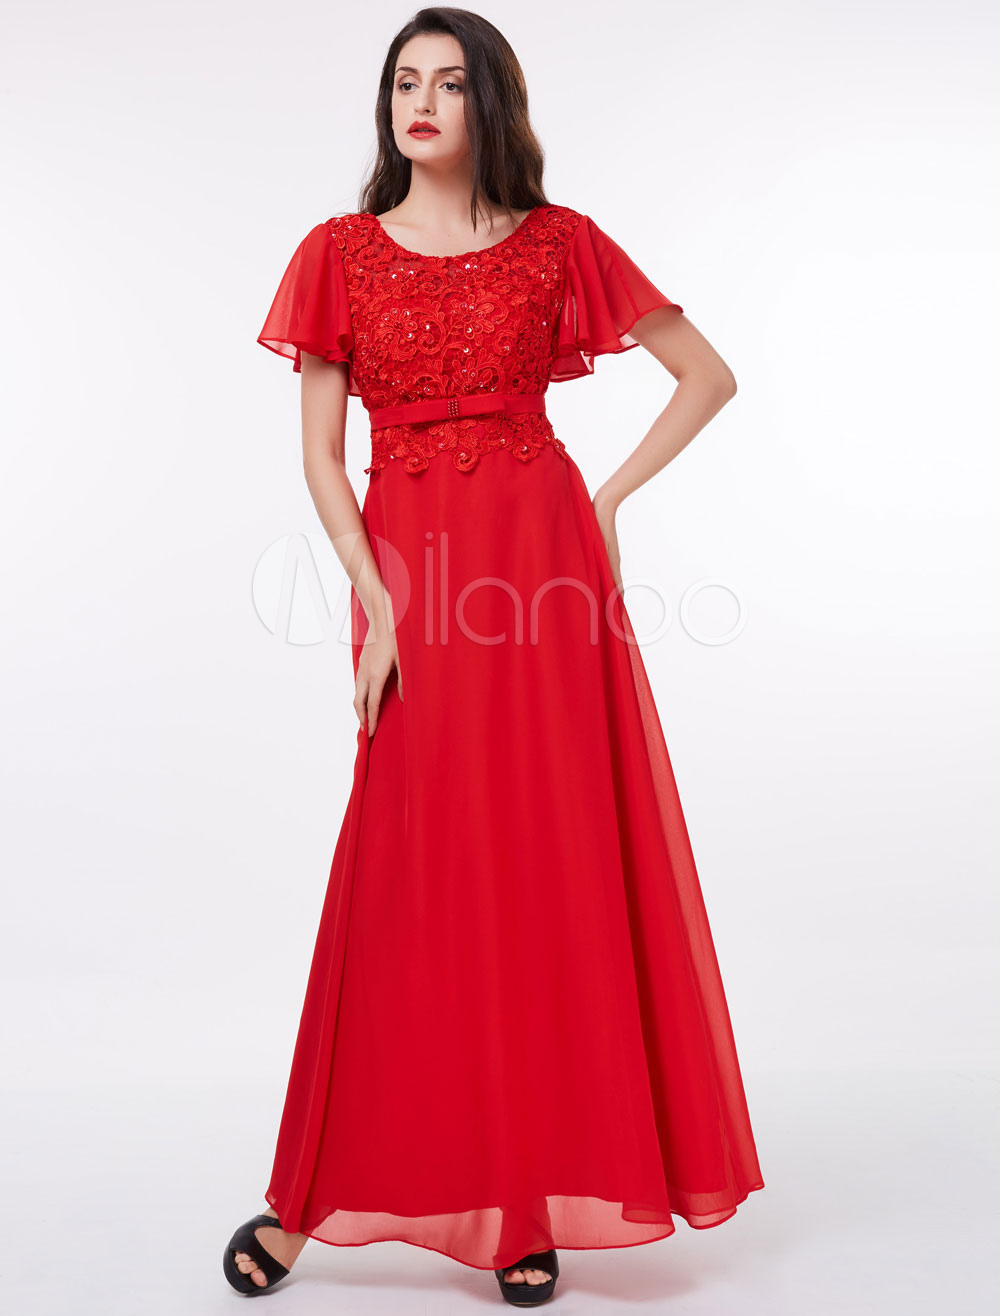 Red Prom Dress Chiffon Lace Sequin Beaded Bow Sash Short Sleeve Floor Length Formal Party Dress (Wedding Cheap Party Dress) photo